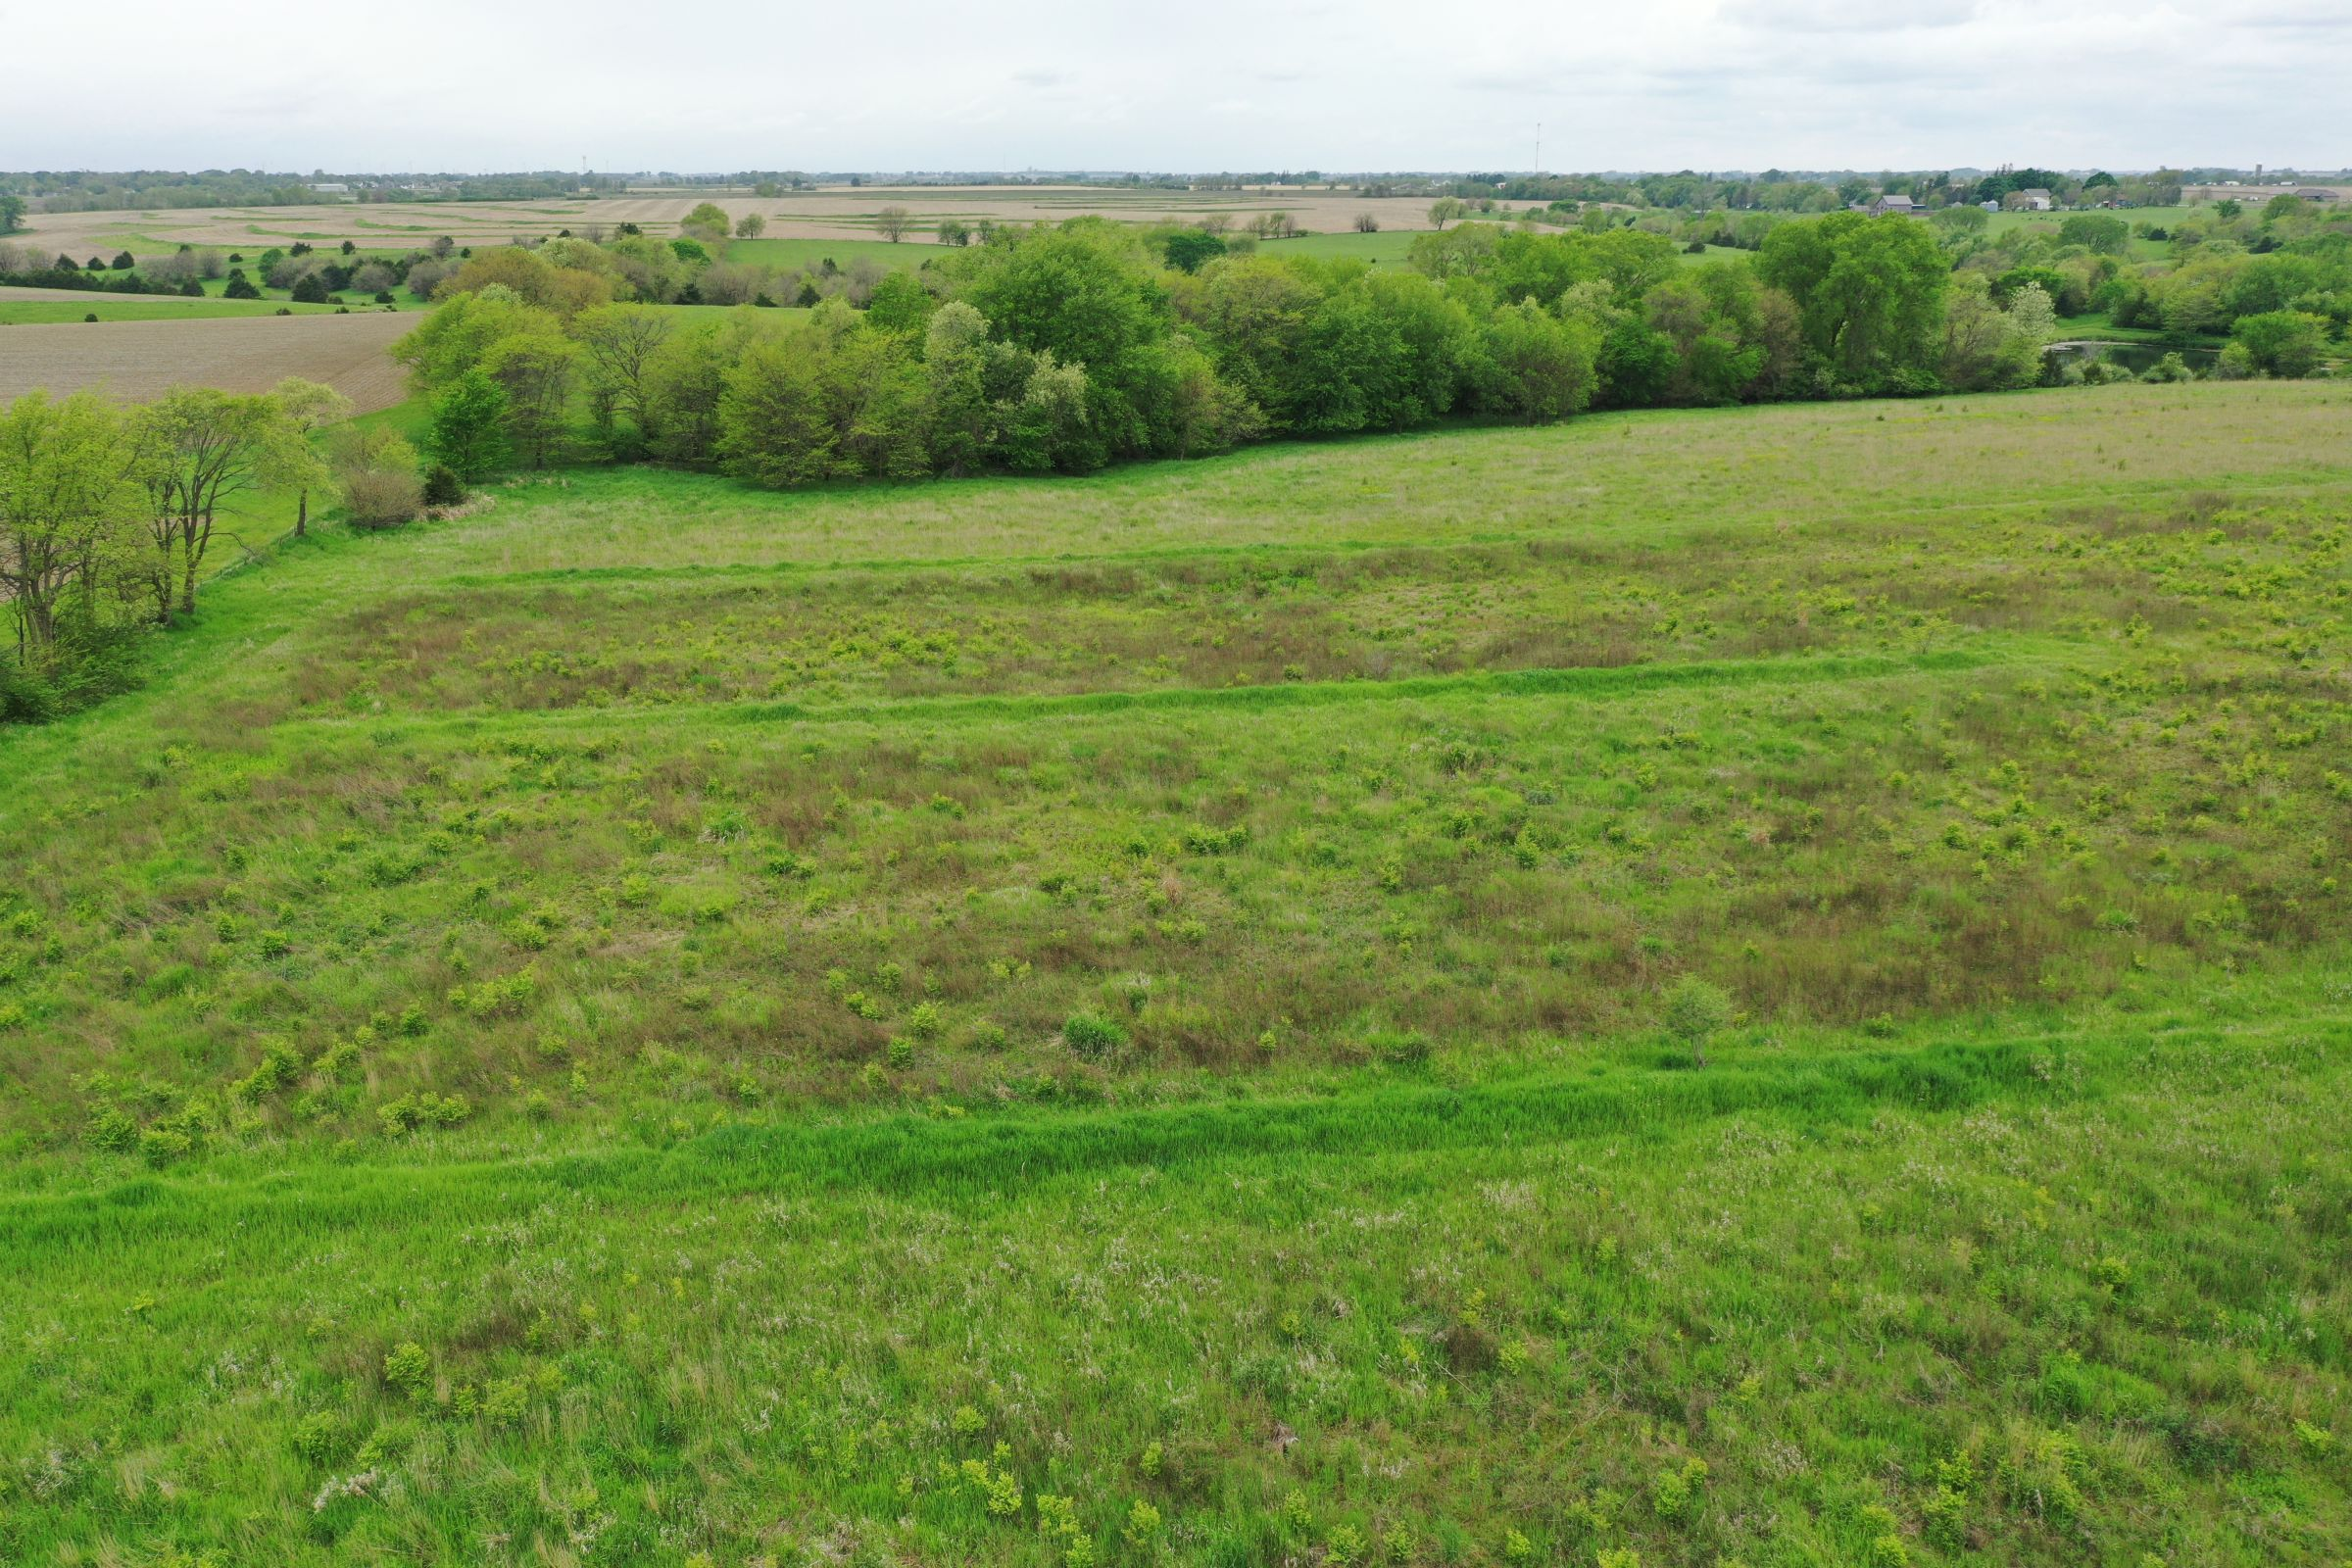 land-dallas-county-iowa-51-acres-listing-number-14894-1-2020-05-27-153504.JPG